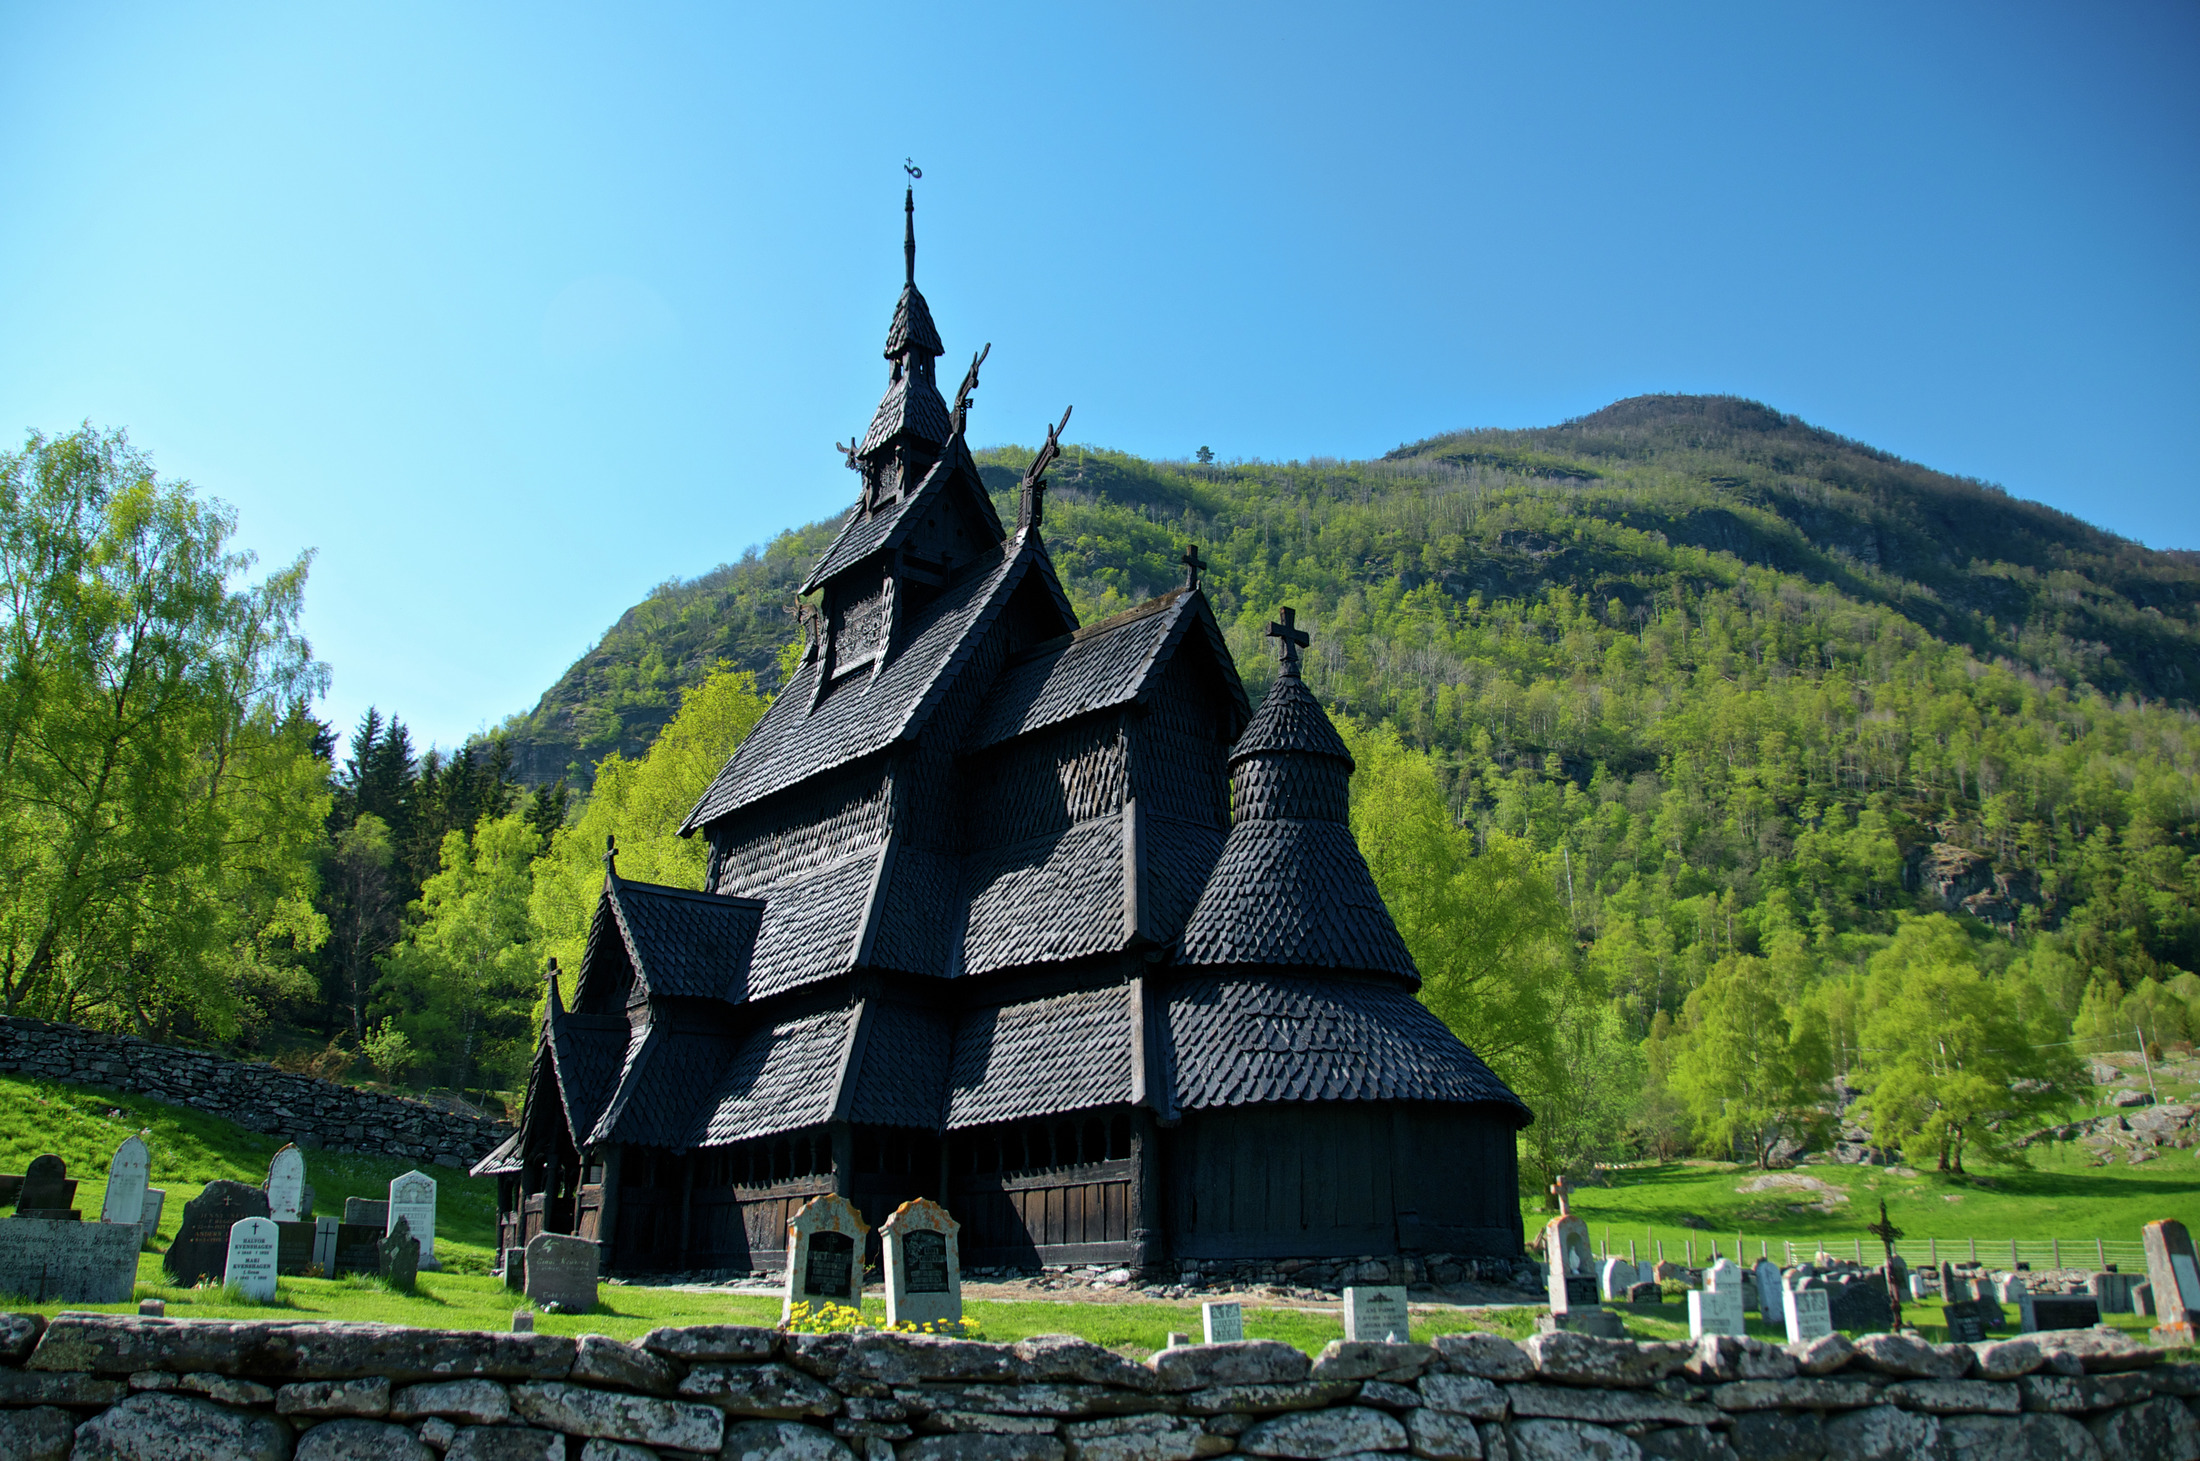 borgund-stave-church-norway-18